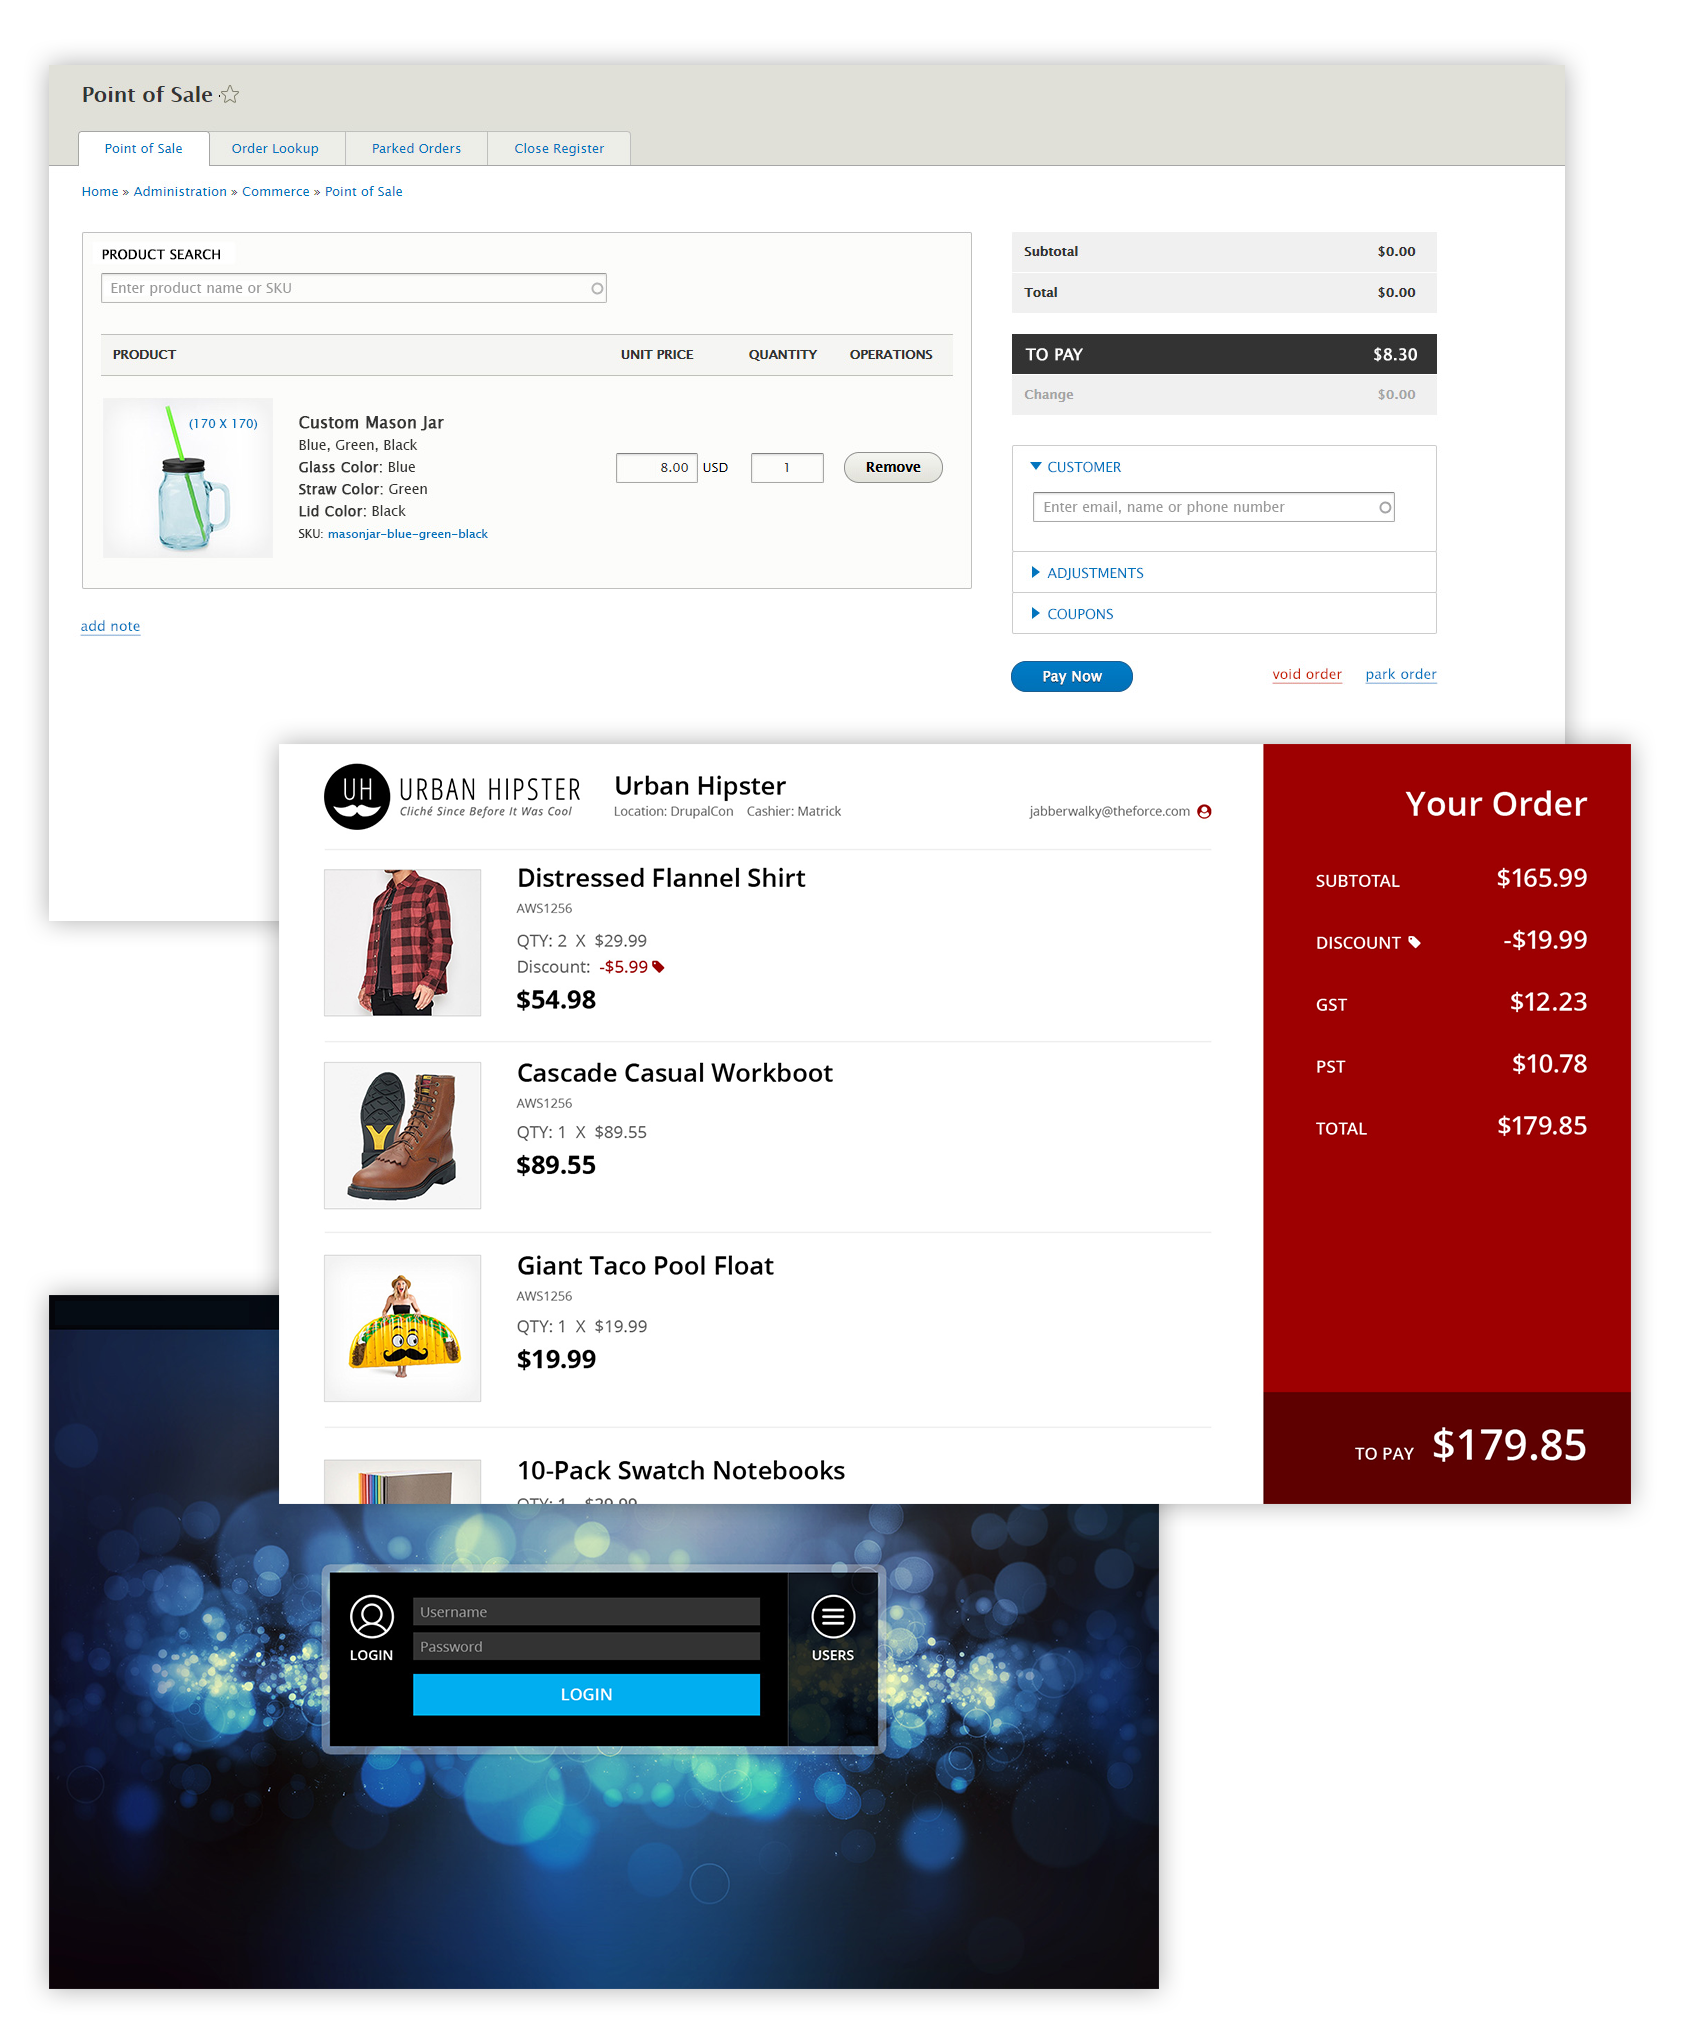 Commerce Point of Sale (POS) | Drupal org